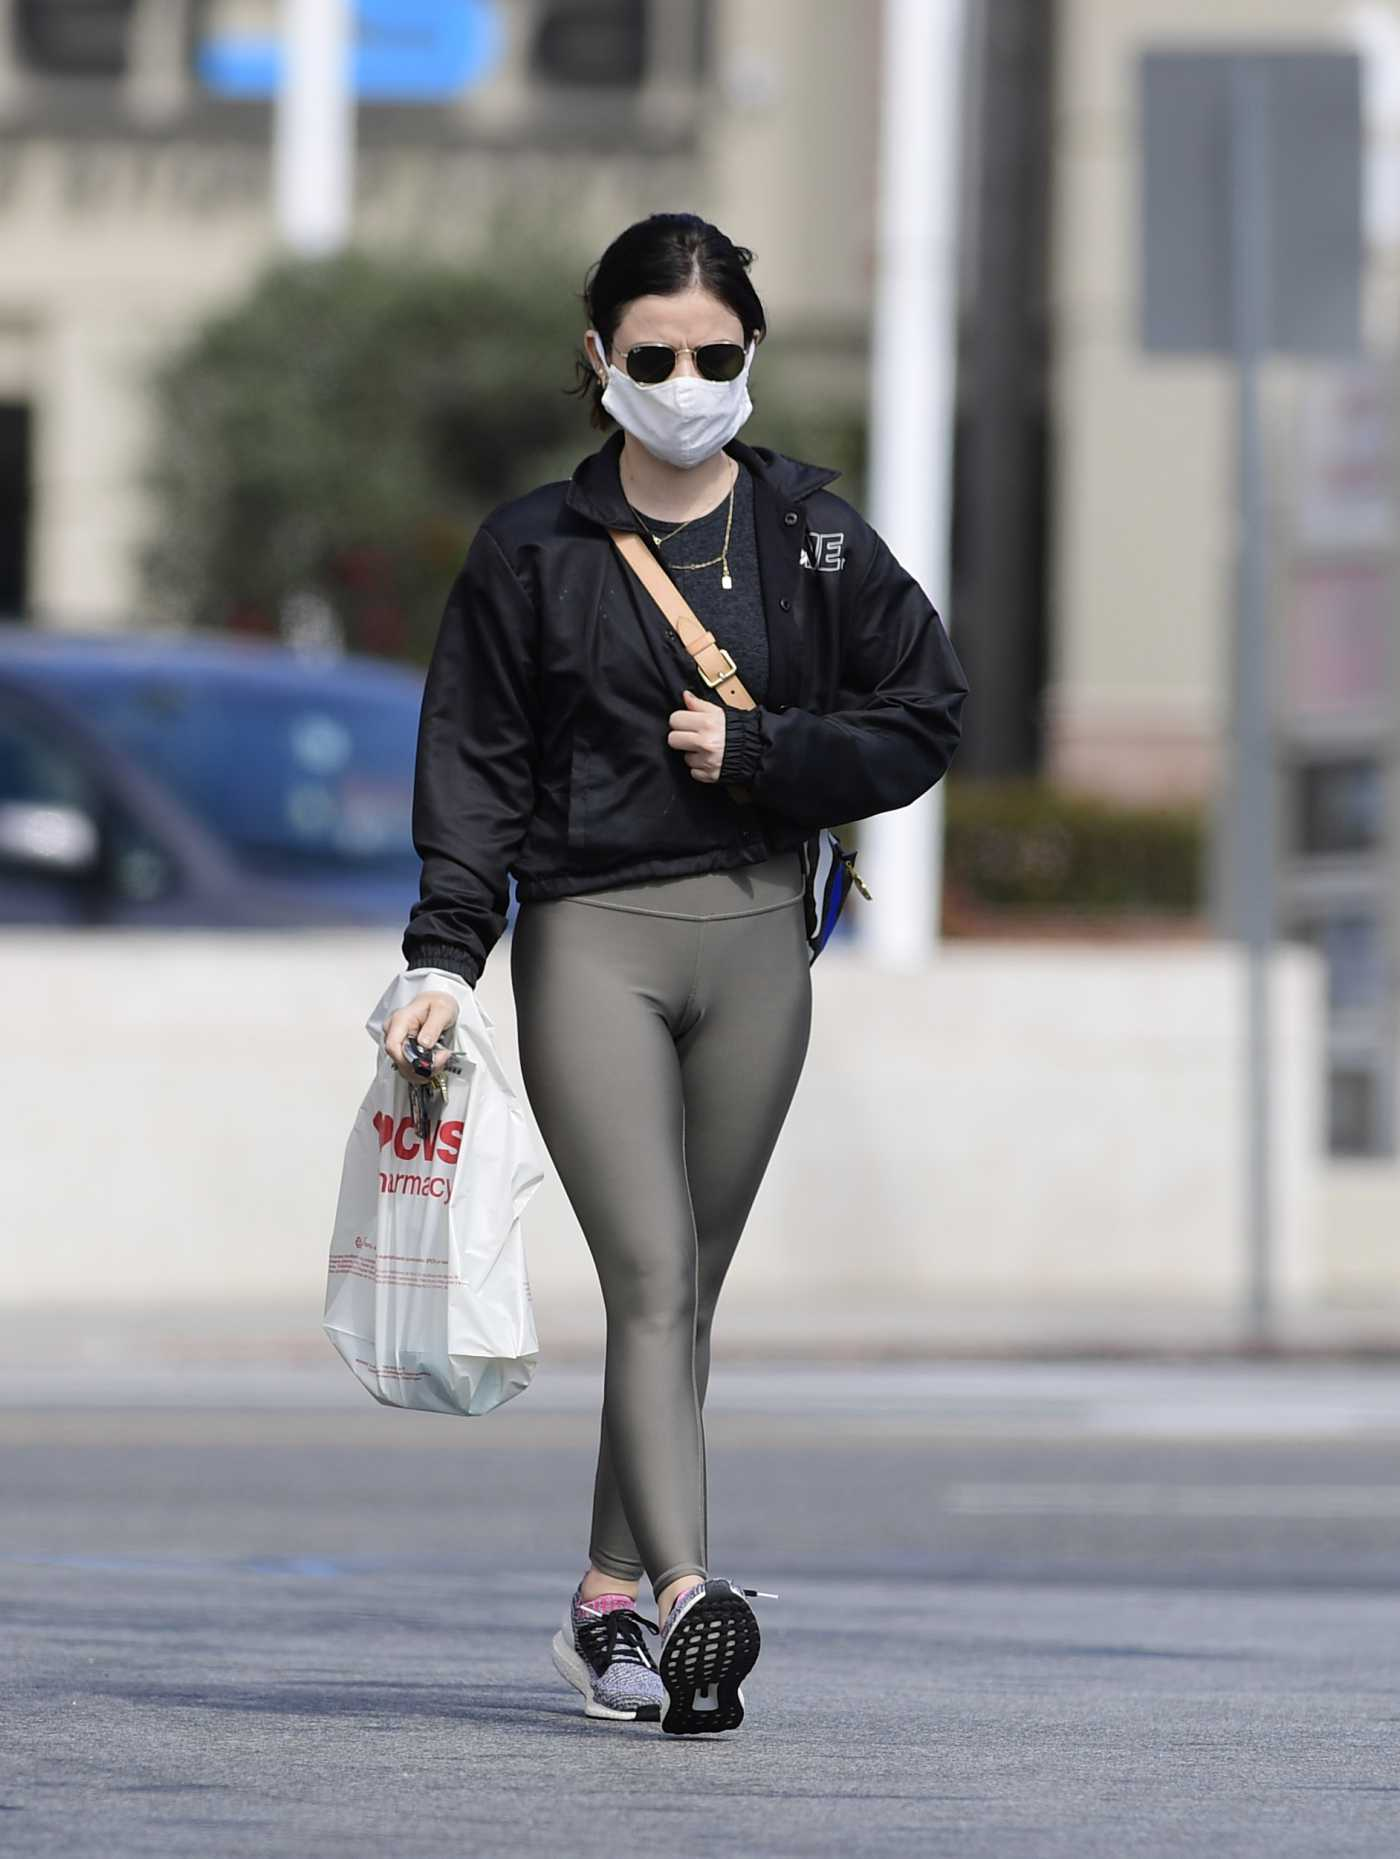 Lucy Hale in a Black Jacket Was Seen Out in West Hollywood 04/04/2020